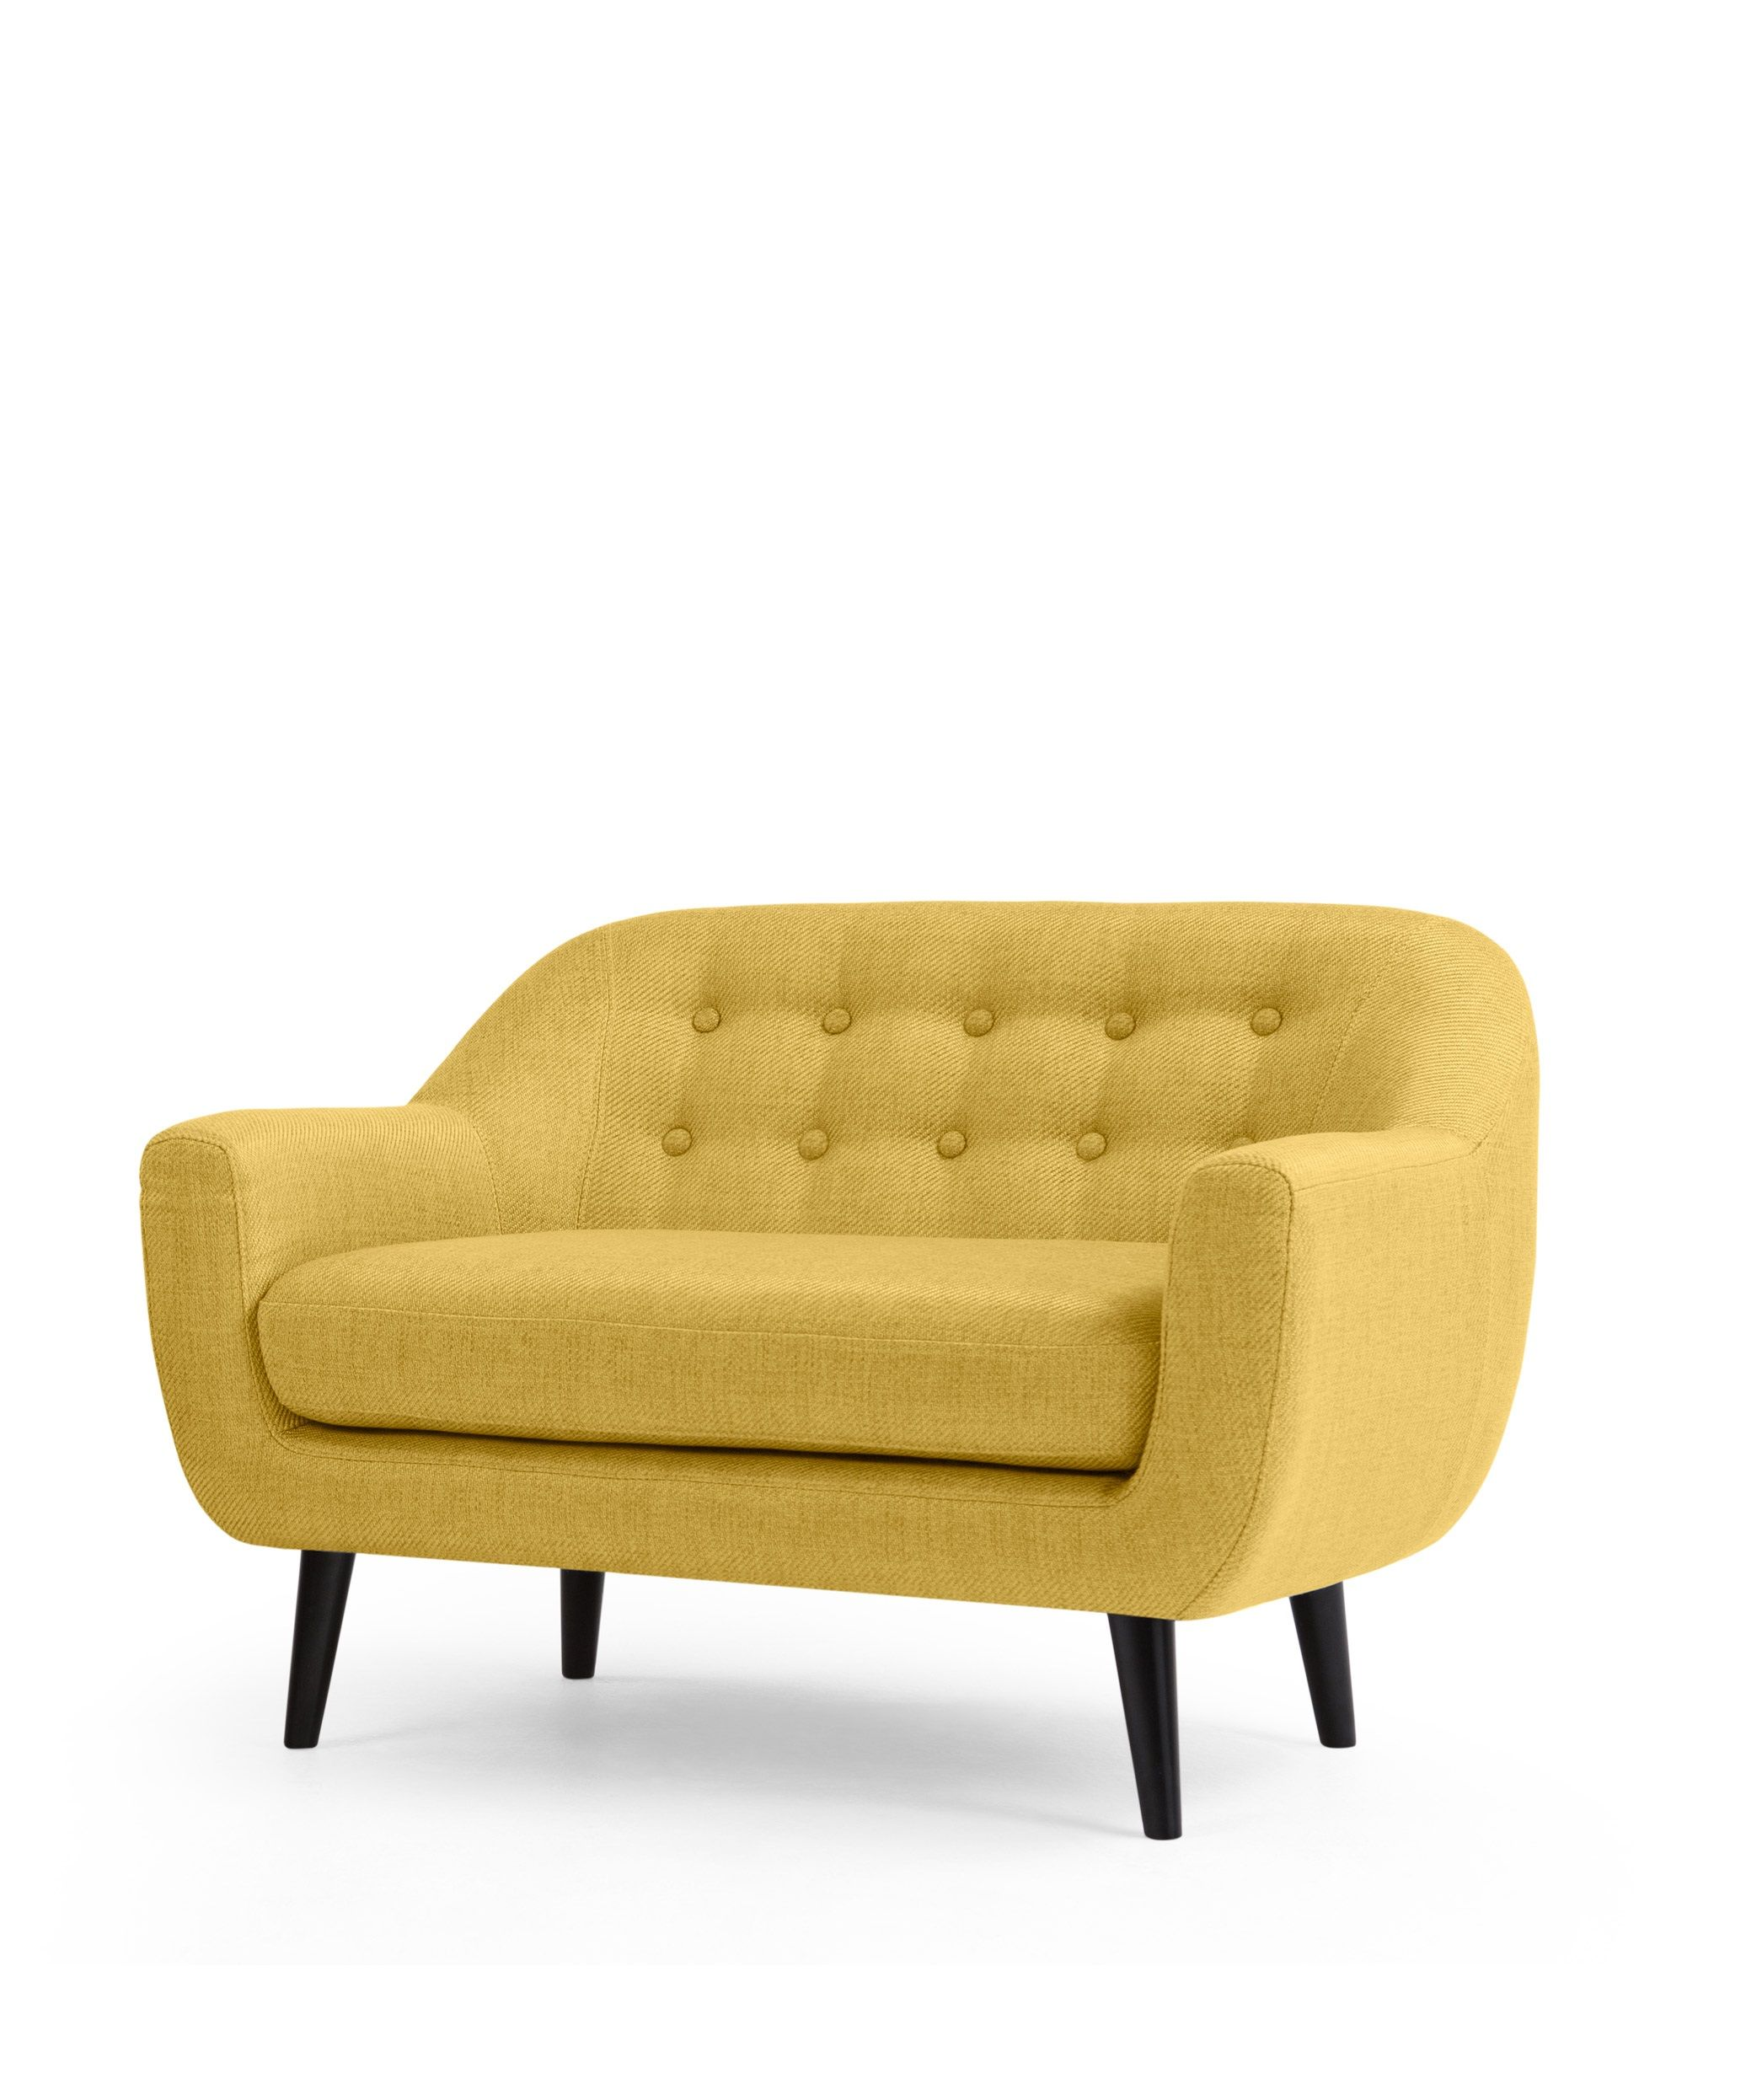 Mini Couch The Mini Ritchie 2 Seater Sofa In Ochre Yellow The Ritchie S